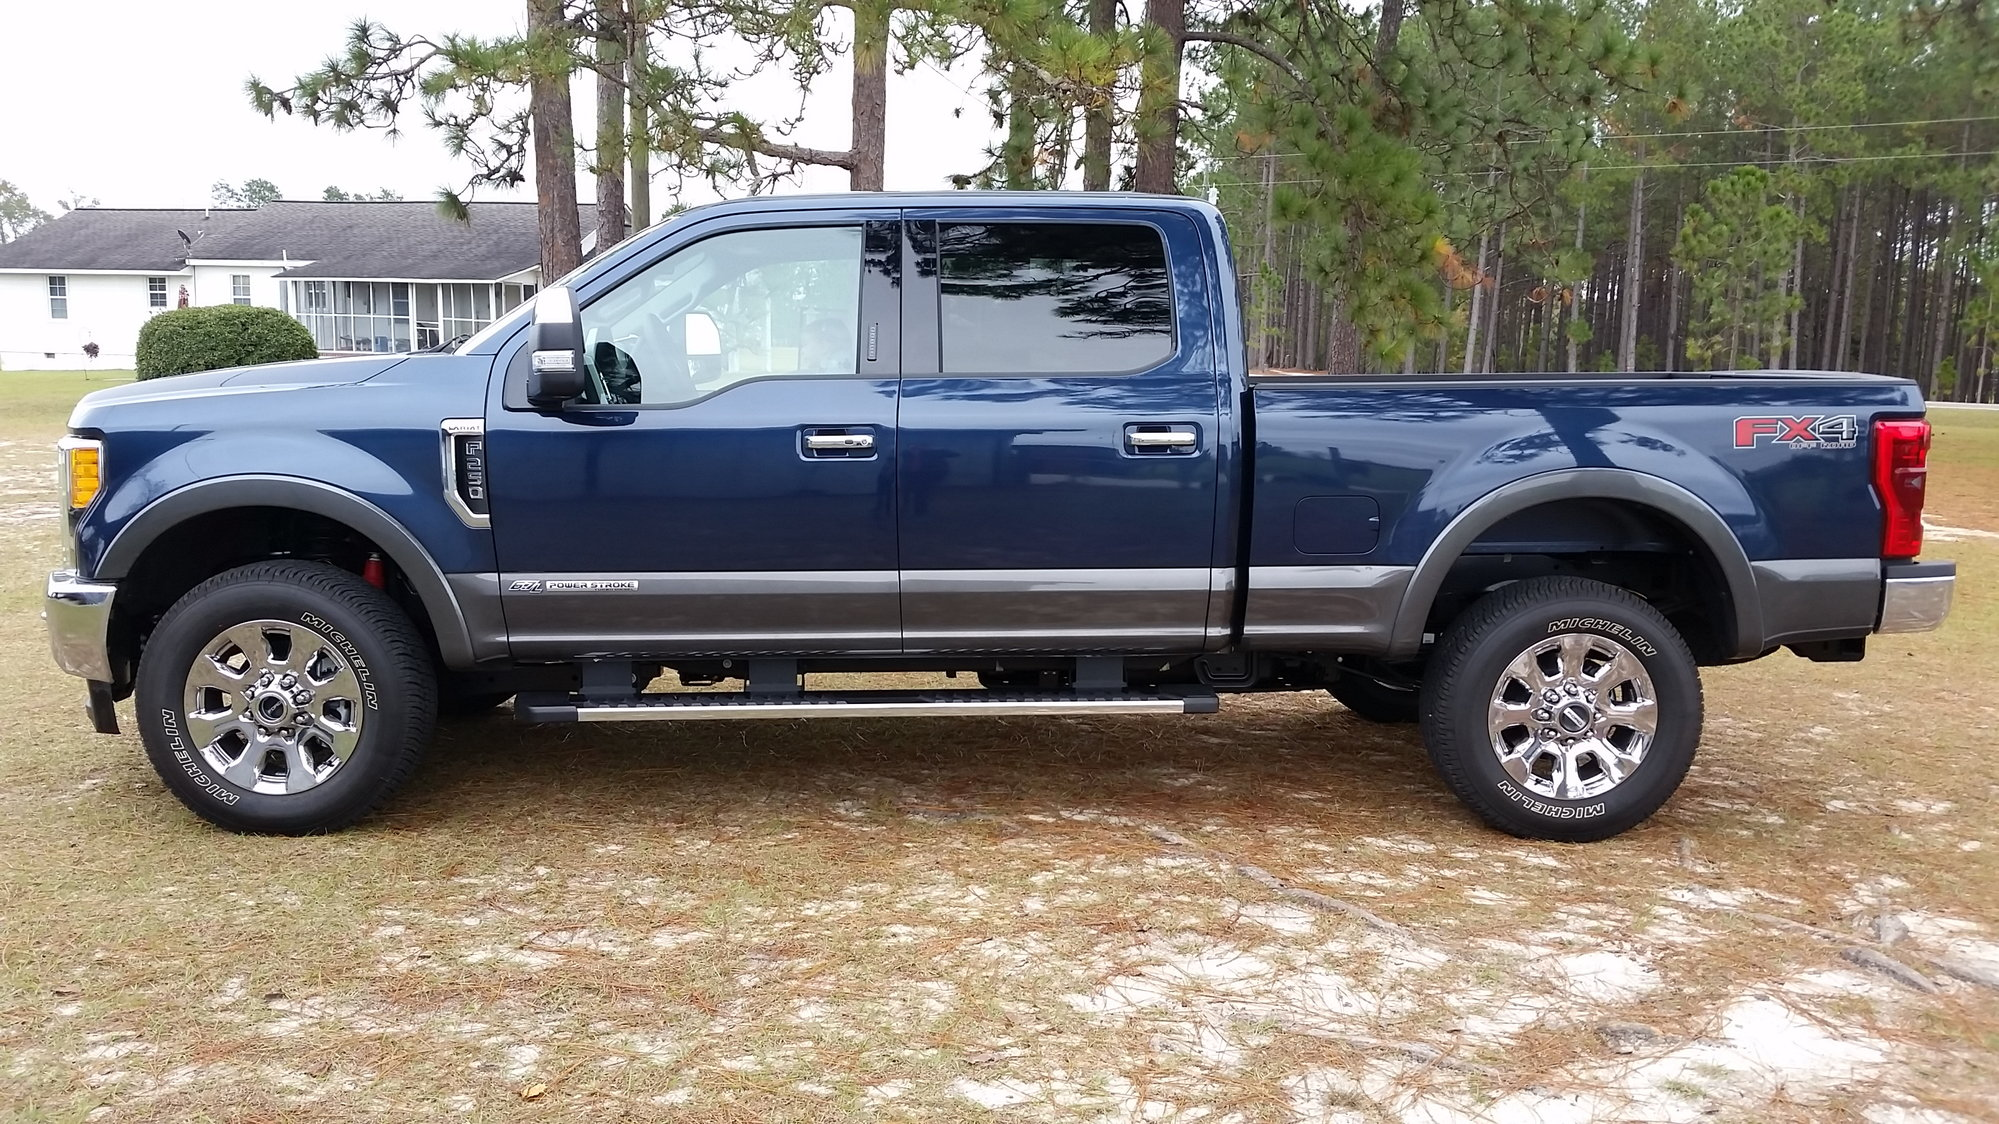 2018 F-250 King Ranch Blue Jean - Two Tone - Ford Truck Enthusiasts Forums